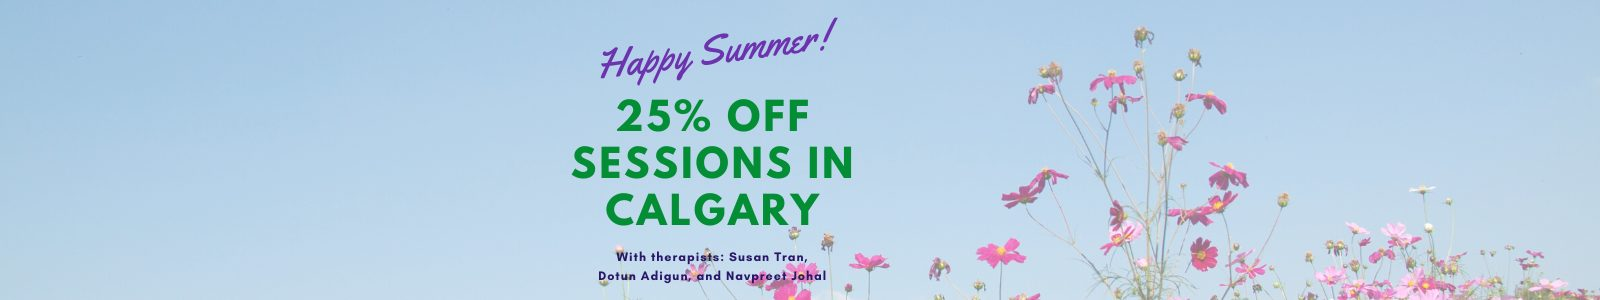 Copy of 25% off sessions in calgary tw (2)